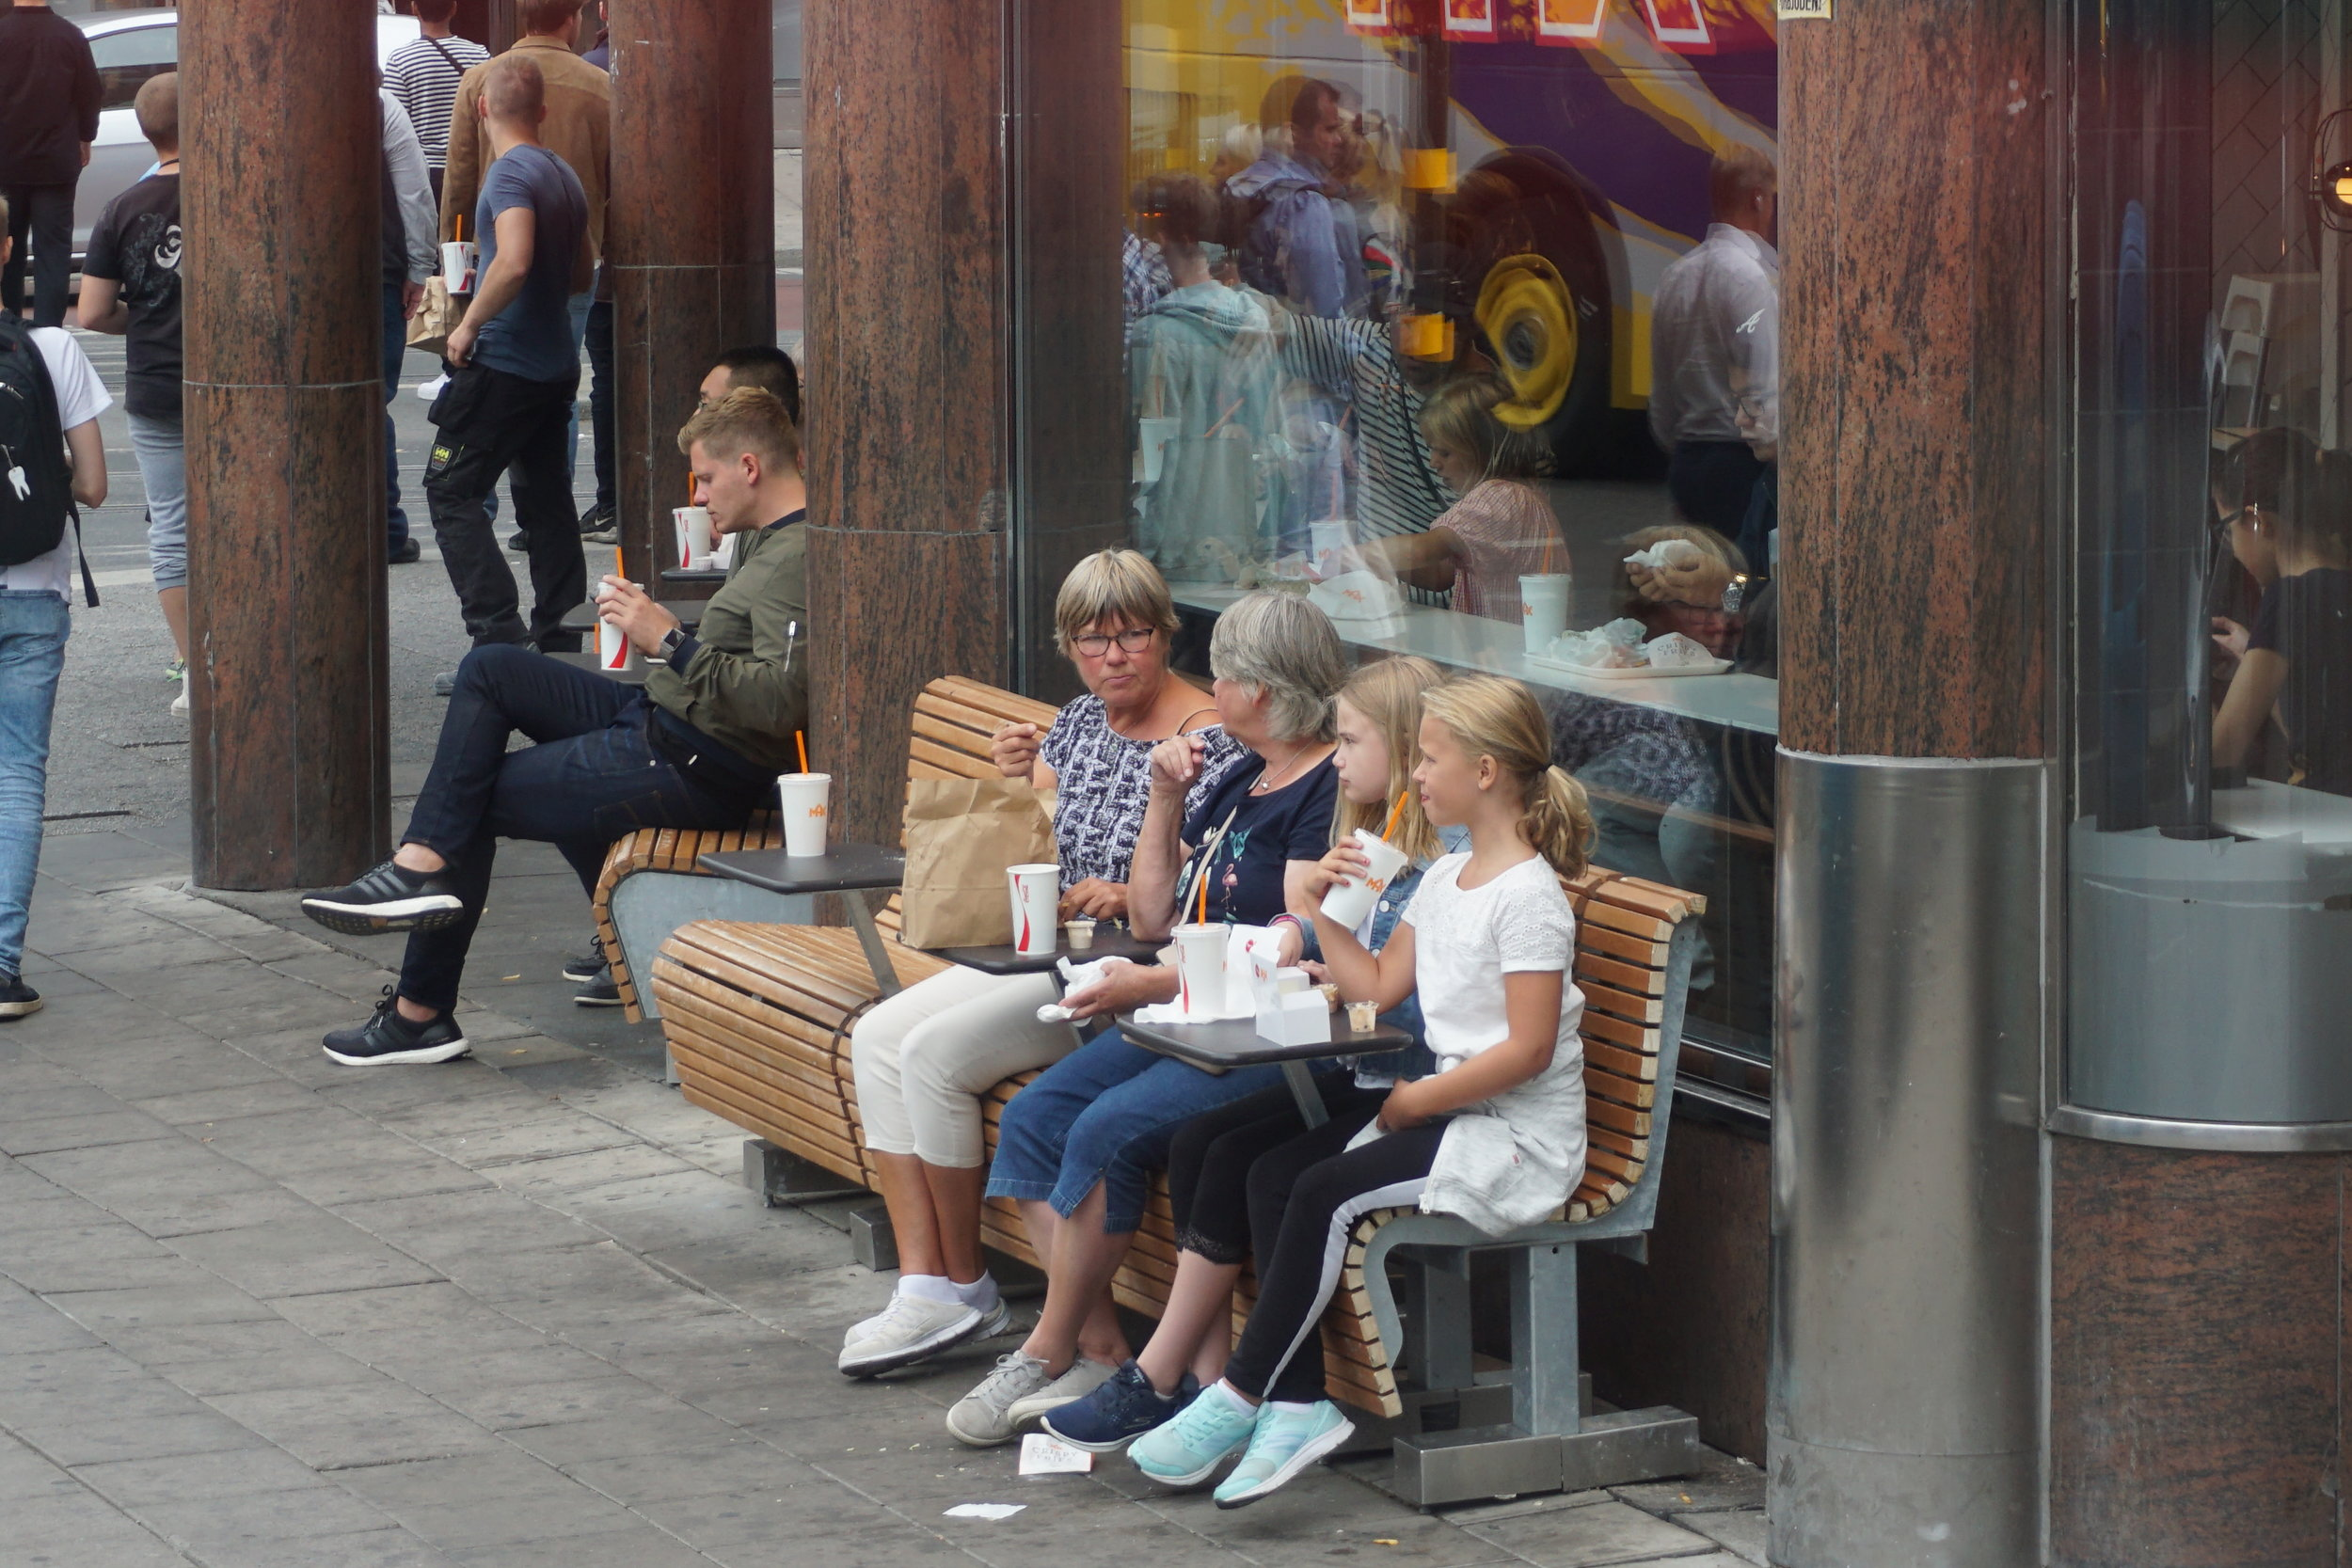 Fast food restaurant seating outdoors